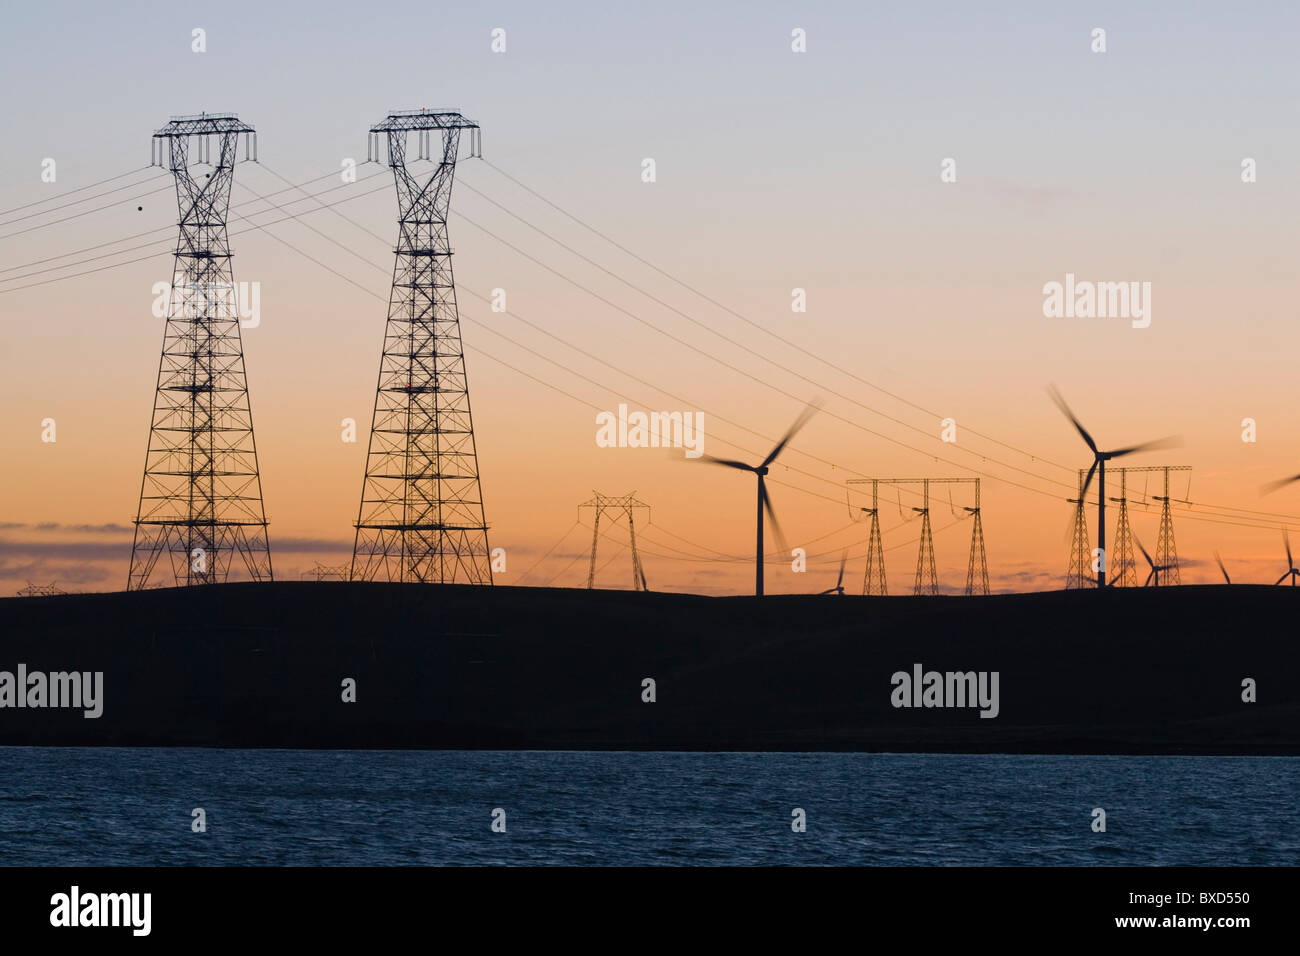 Wind turbines and power transmission lines at sunset near San Francisco - Stock Image